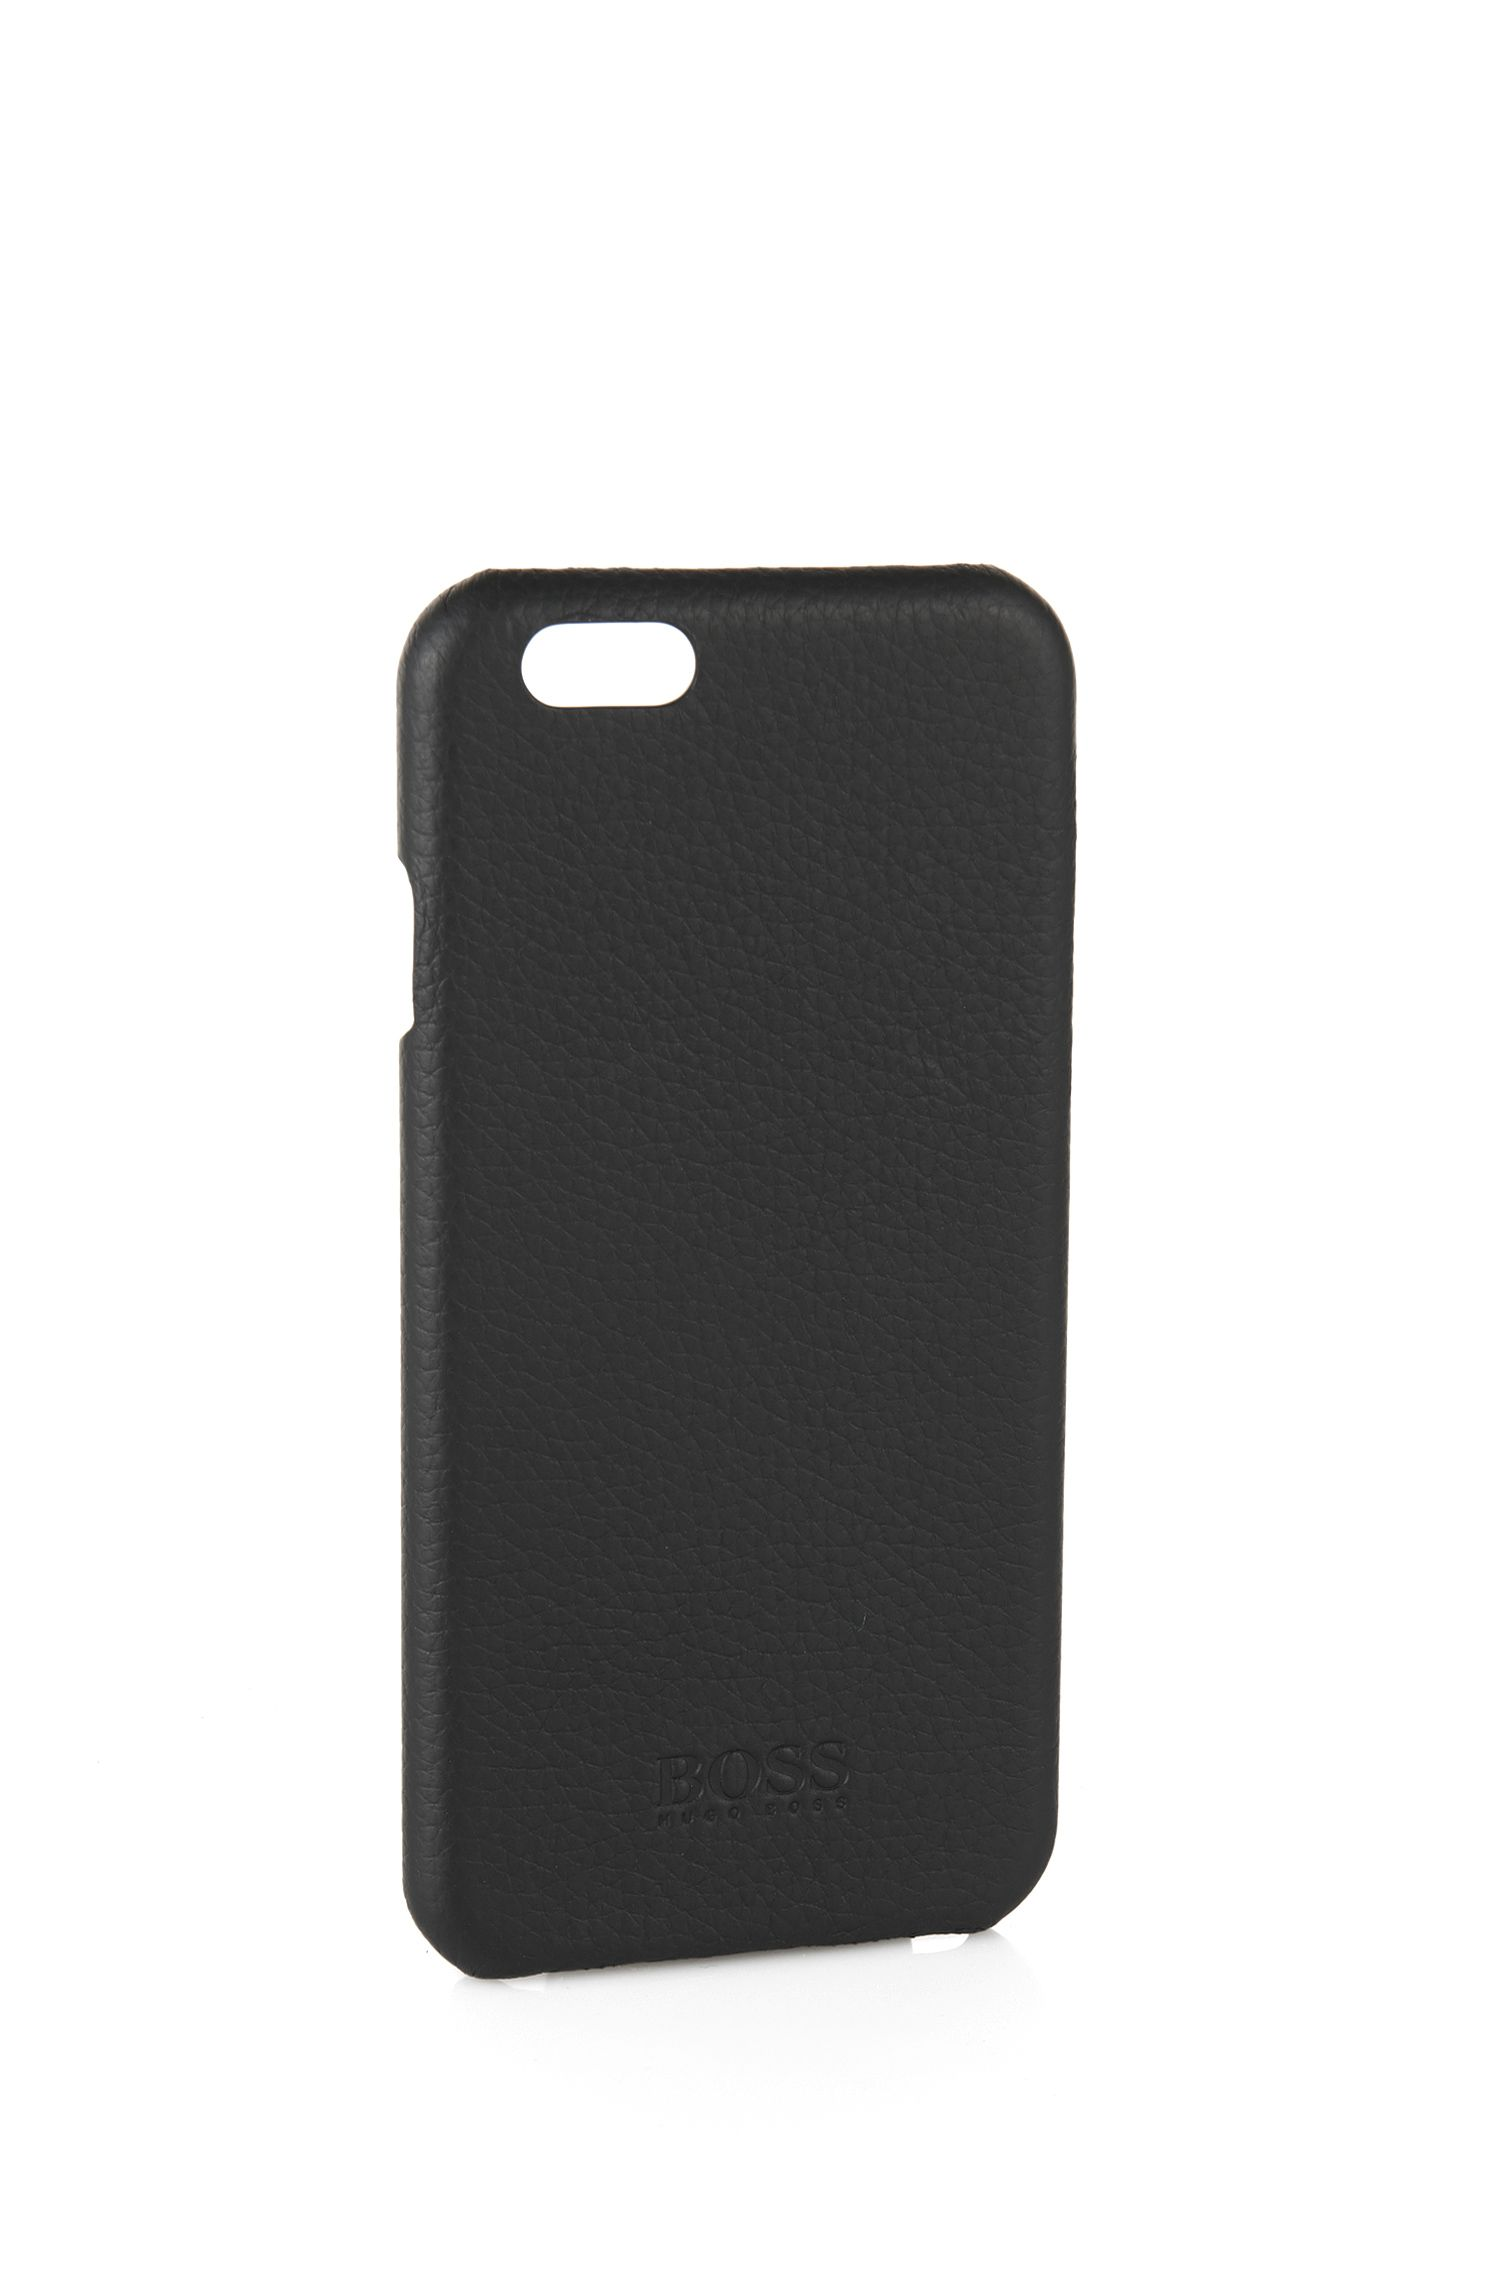 Smartphone-Cover für das iPhone 6: 'Traveller_Phone'